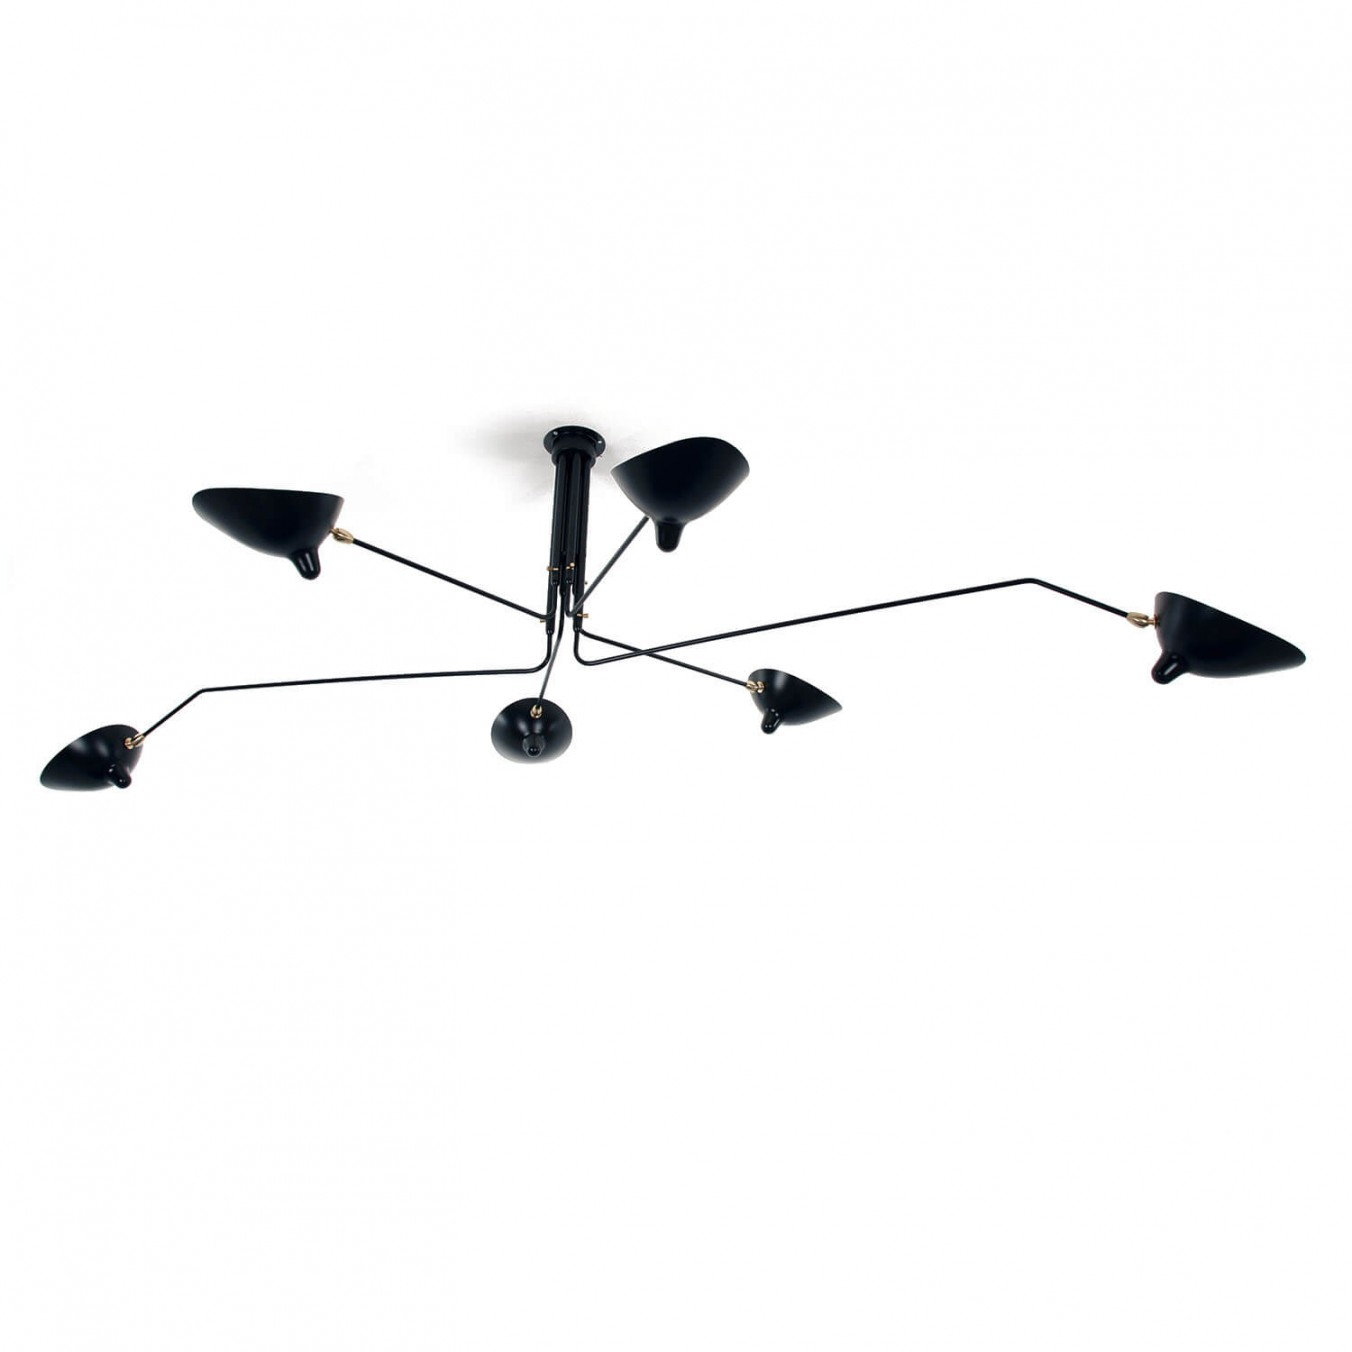 Ceiling Light with 6 pivoting arms